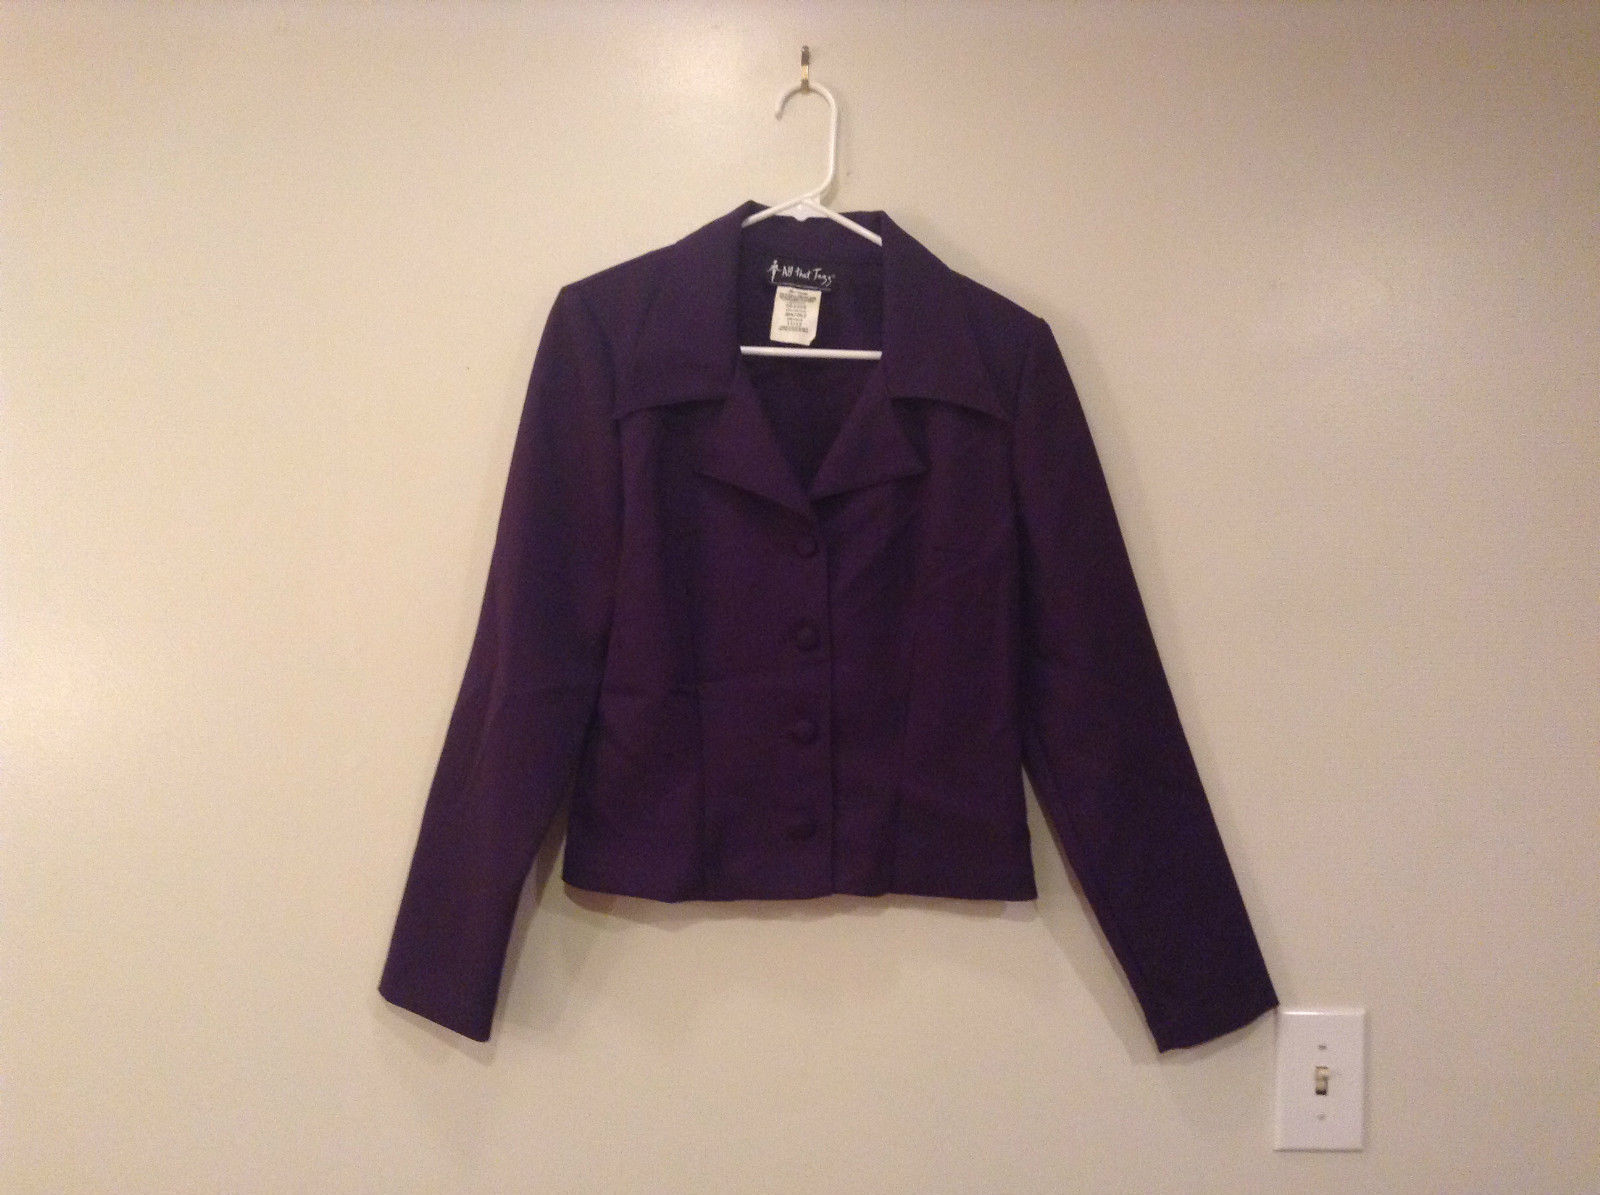 Dark Deep Purple Jacket 100 Percent Polyester All That Jazz Size 11 to 12